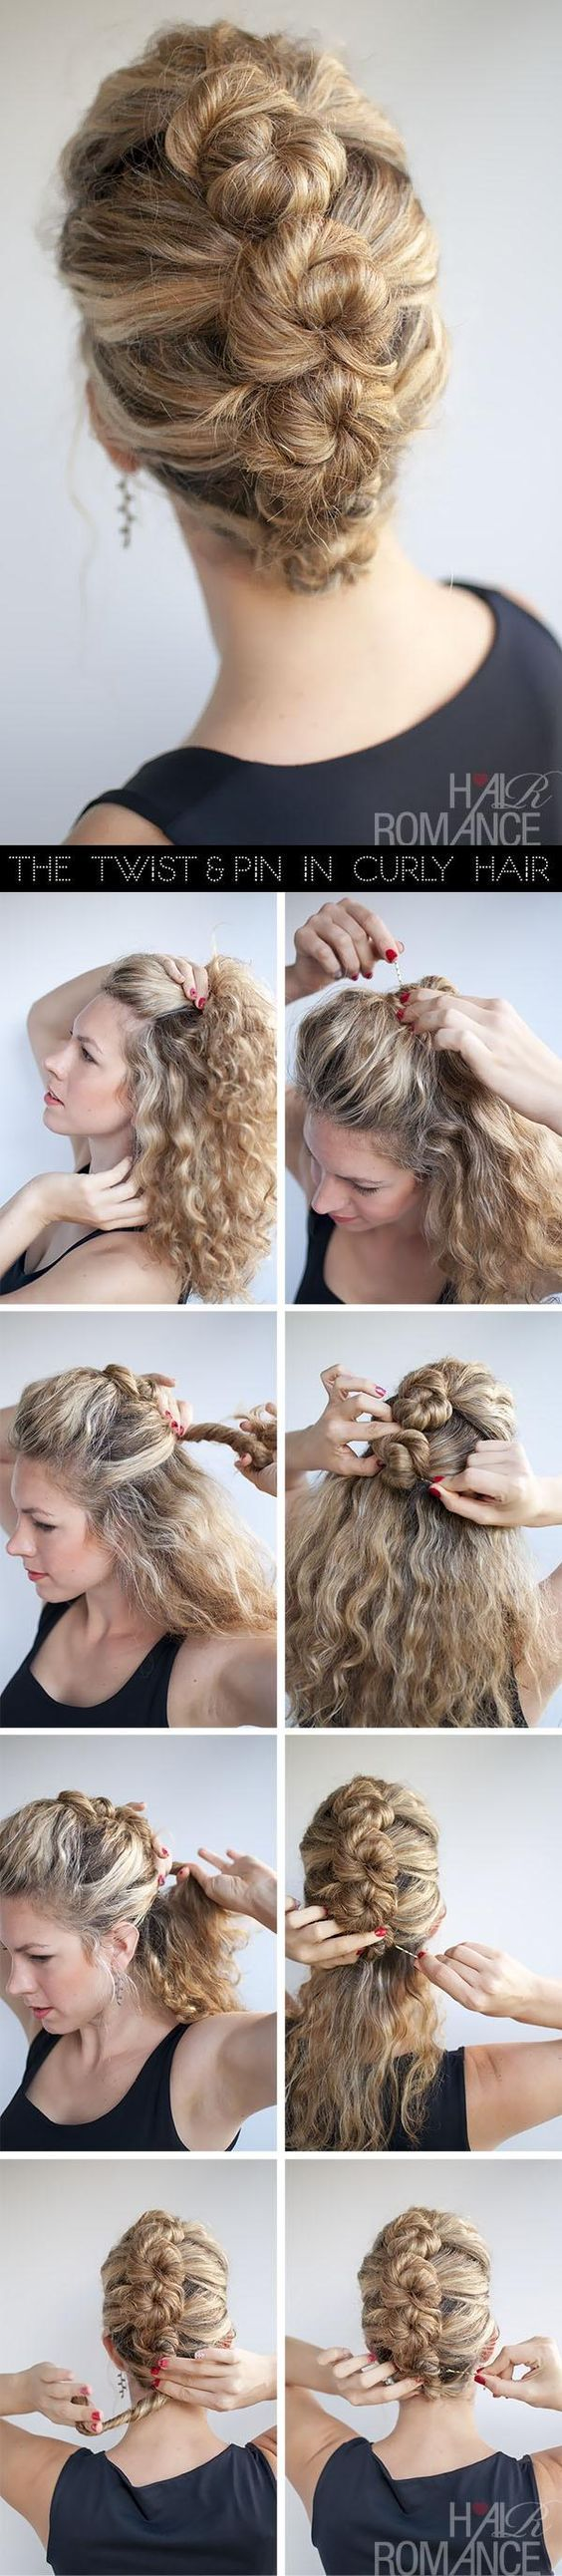 Hair Romance hairstyle tutorial - The French Twist and Pin.